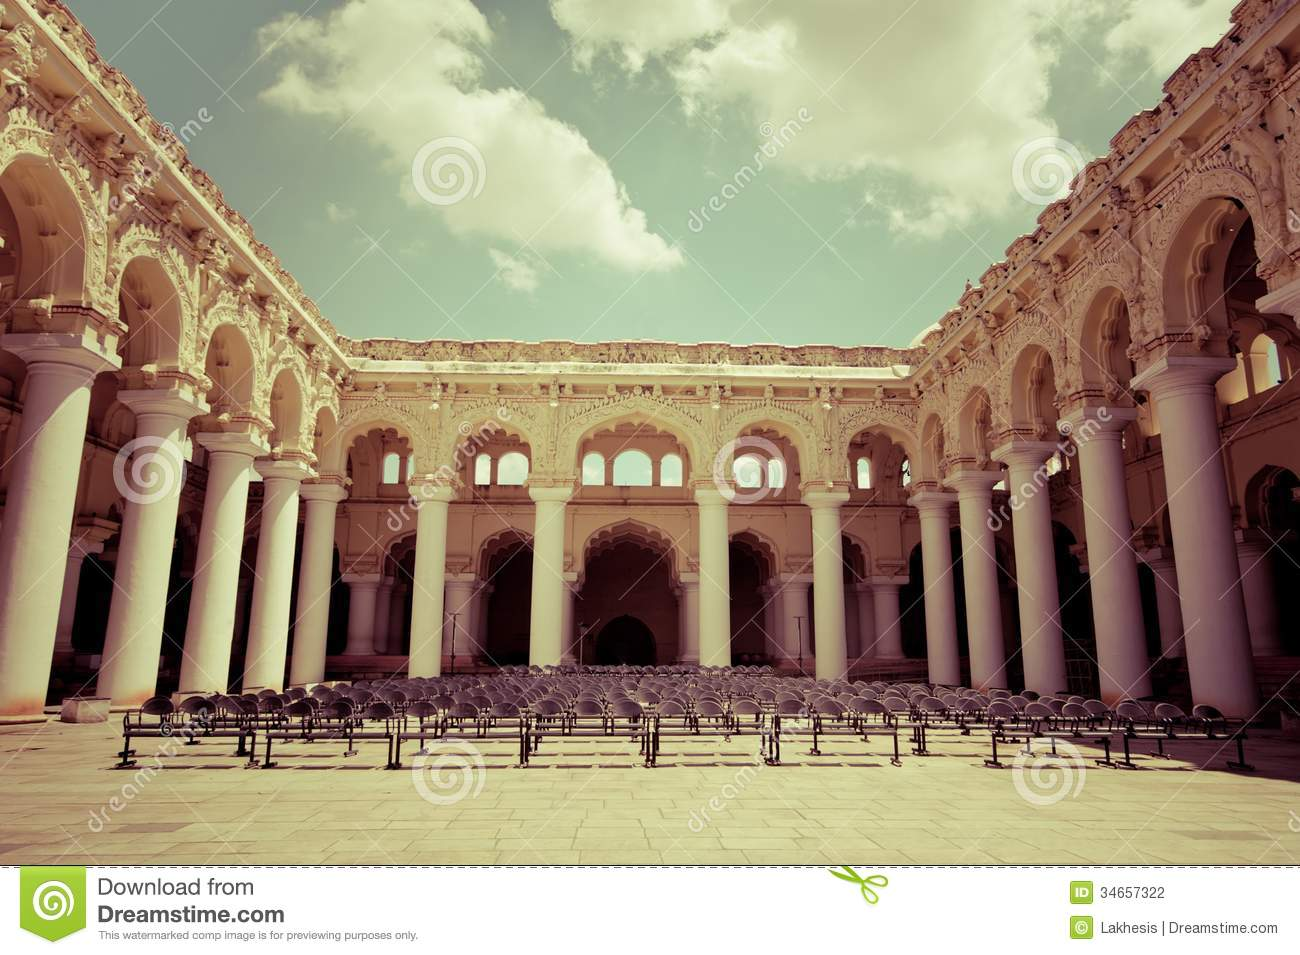 stool chair photography black and cream dining chairs outdoors concert hall with ancient columns stock - image: 34657322